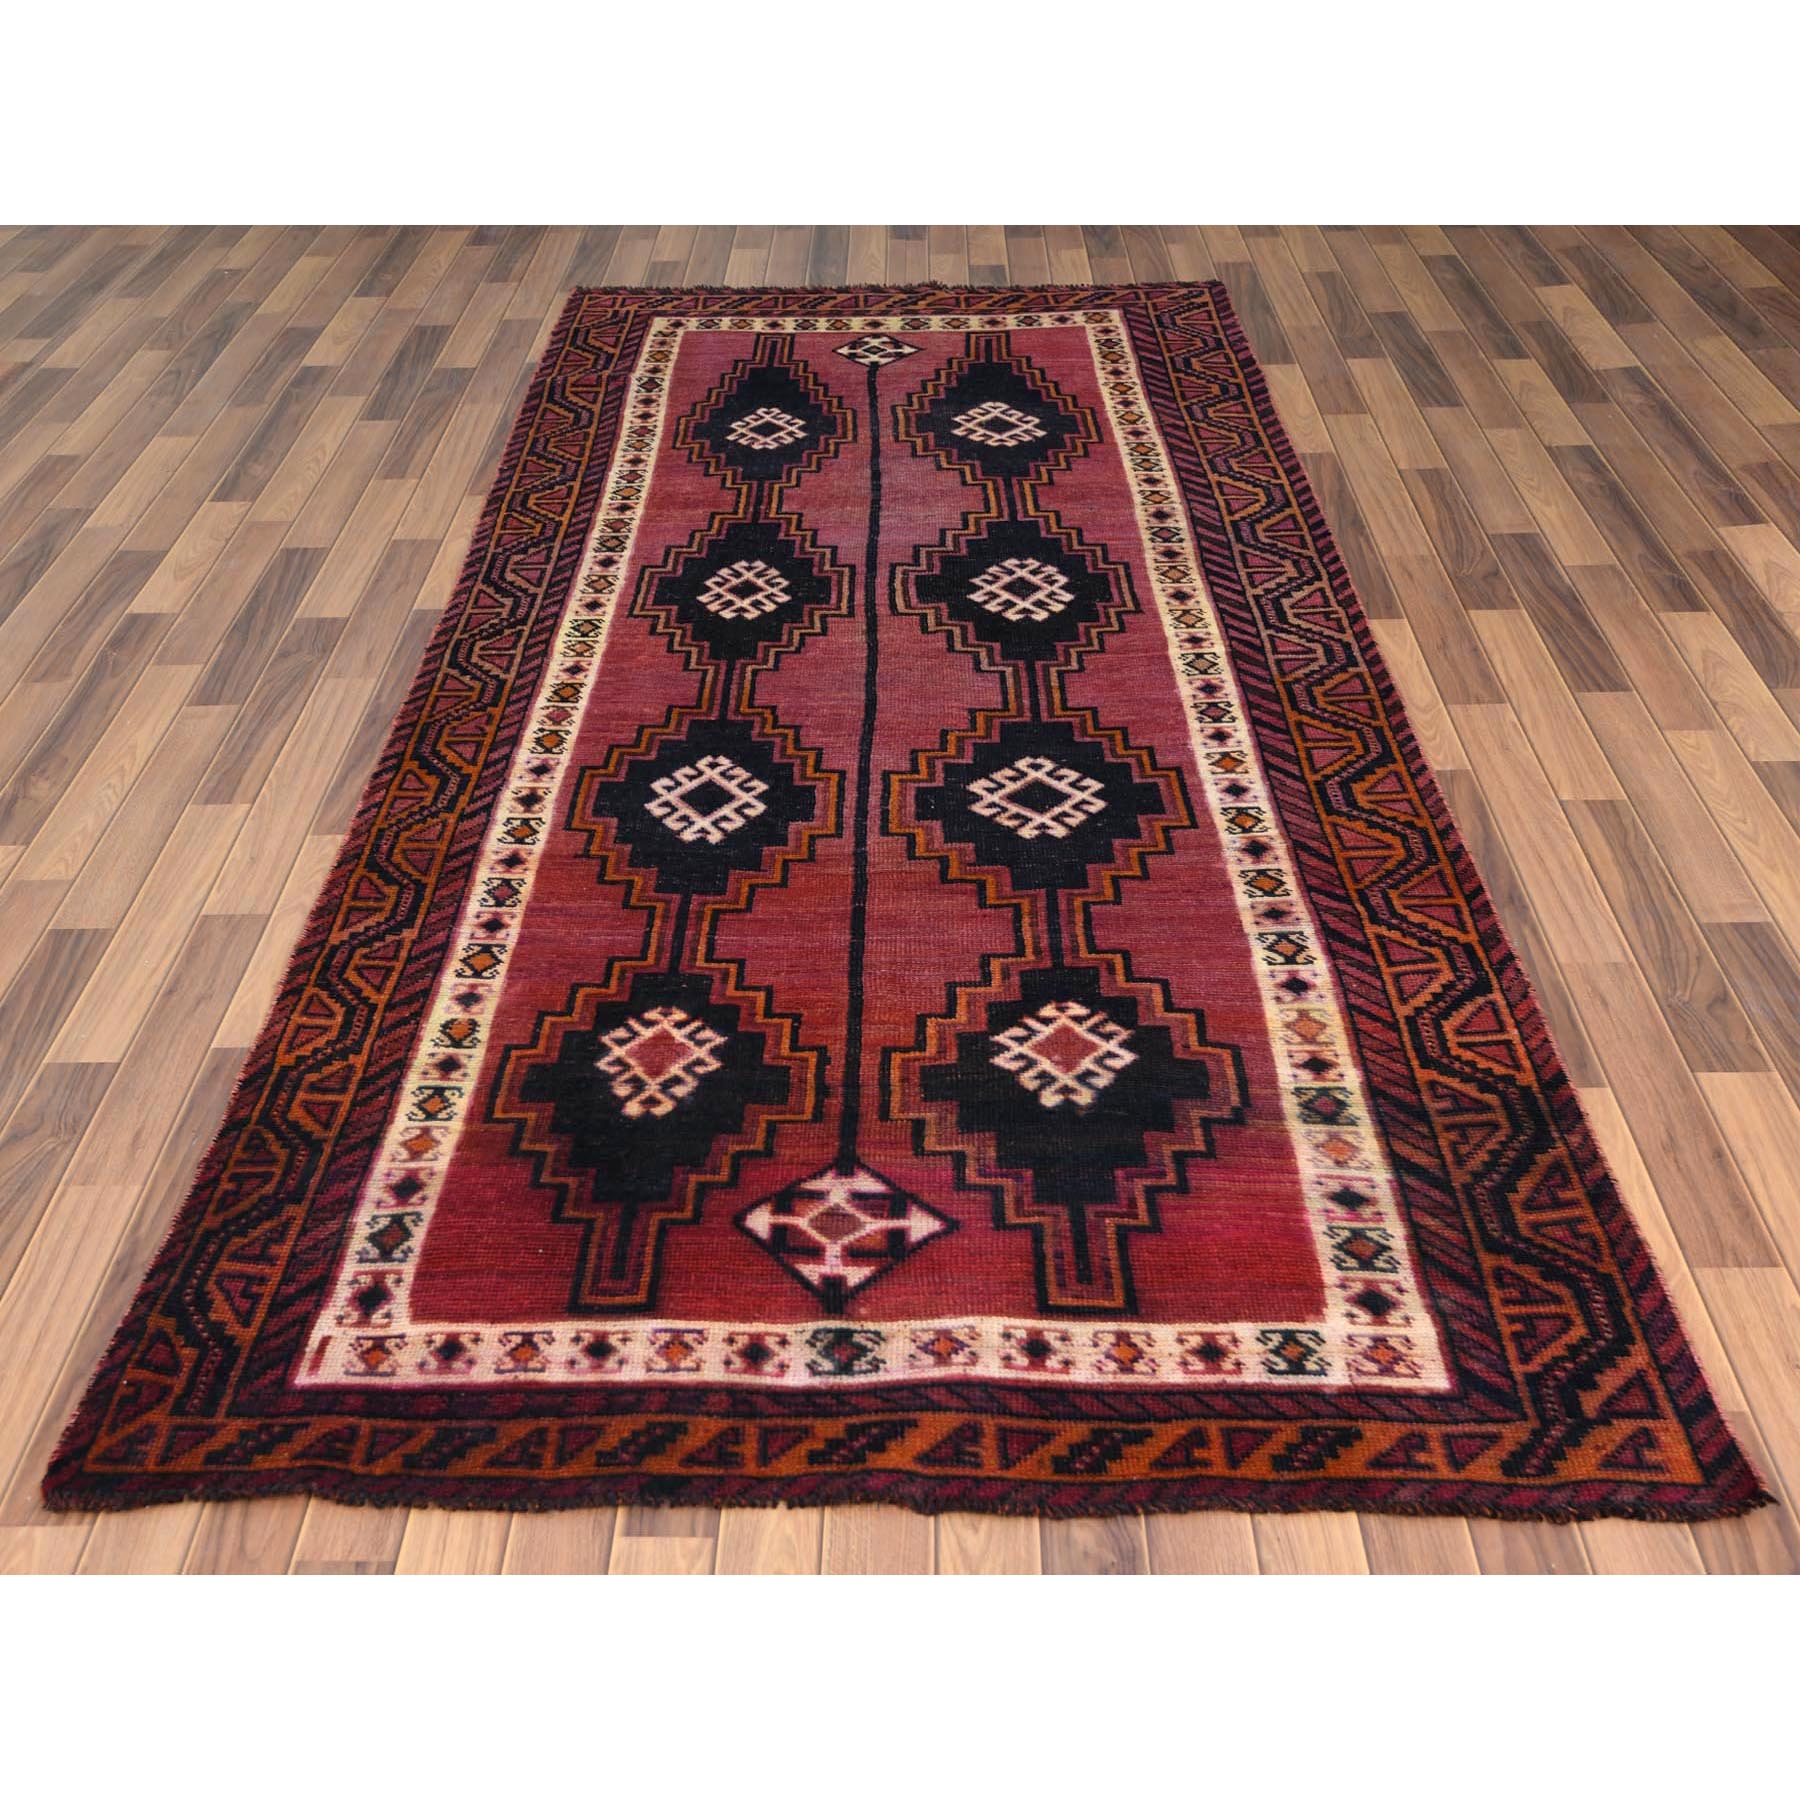 """4'9""""x10'5"""" Hand Knotted Red Persian Qashqai Worn Down Vintage Bohemian Natural Wool Clean Runner Oriental Rug"""